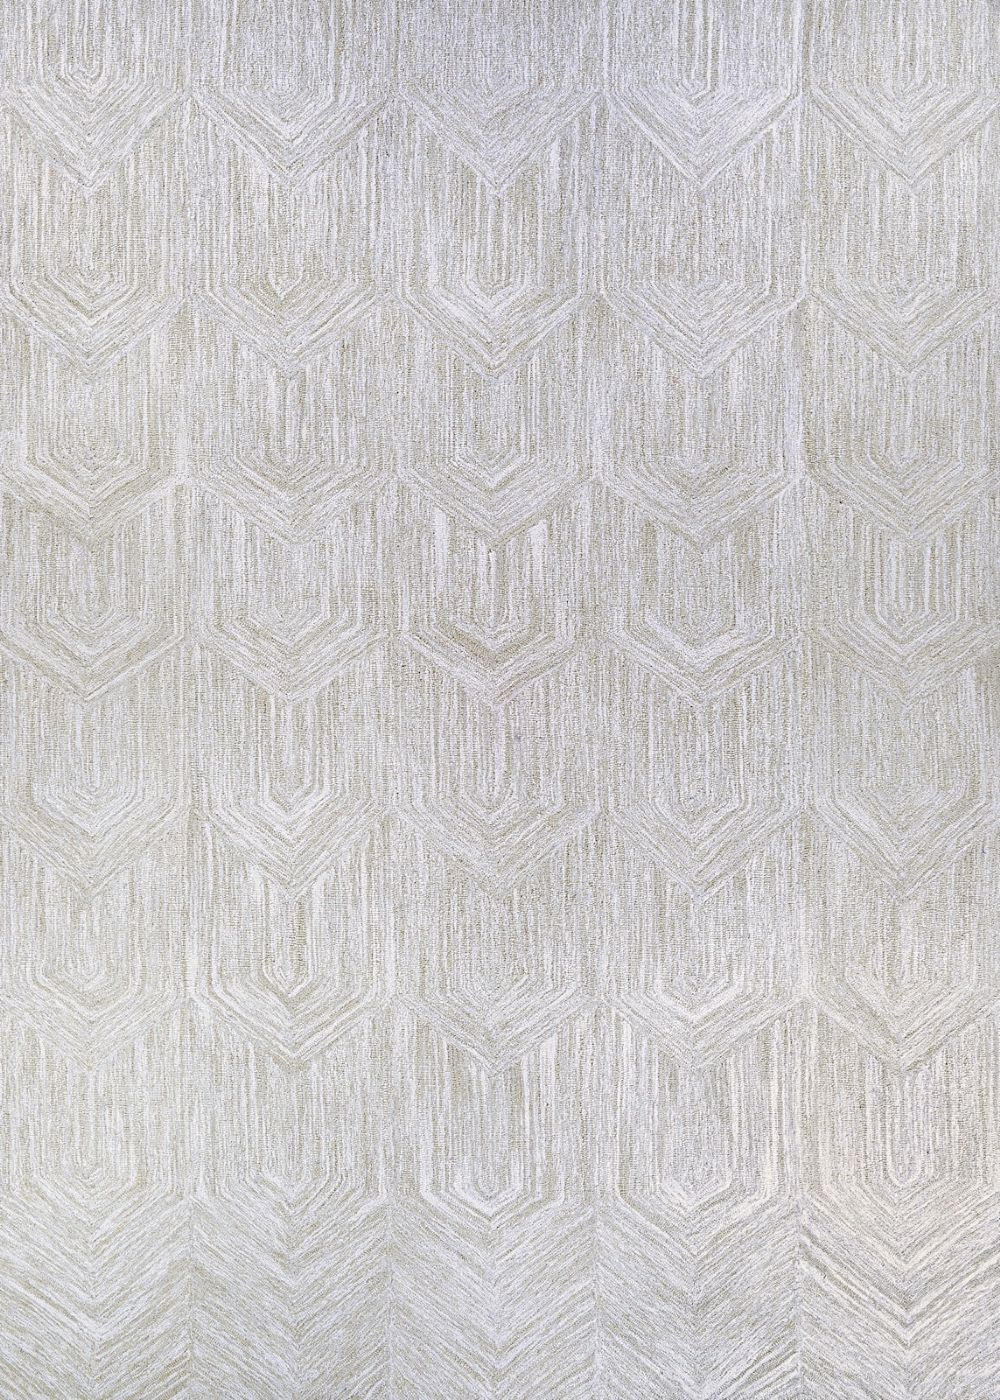 couristan crawford transitional area rug collection